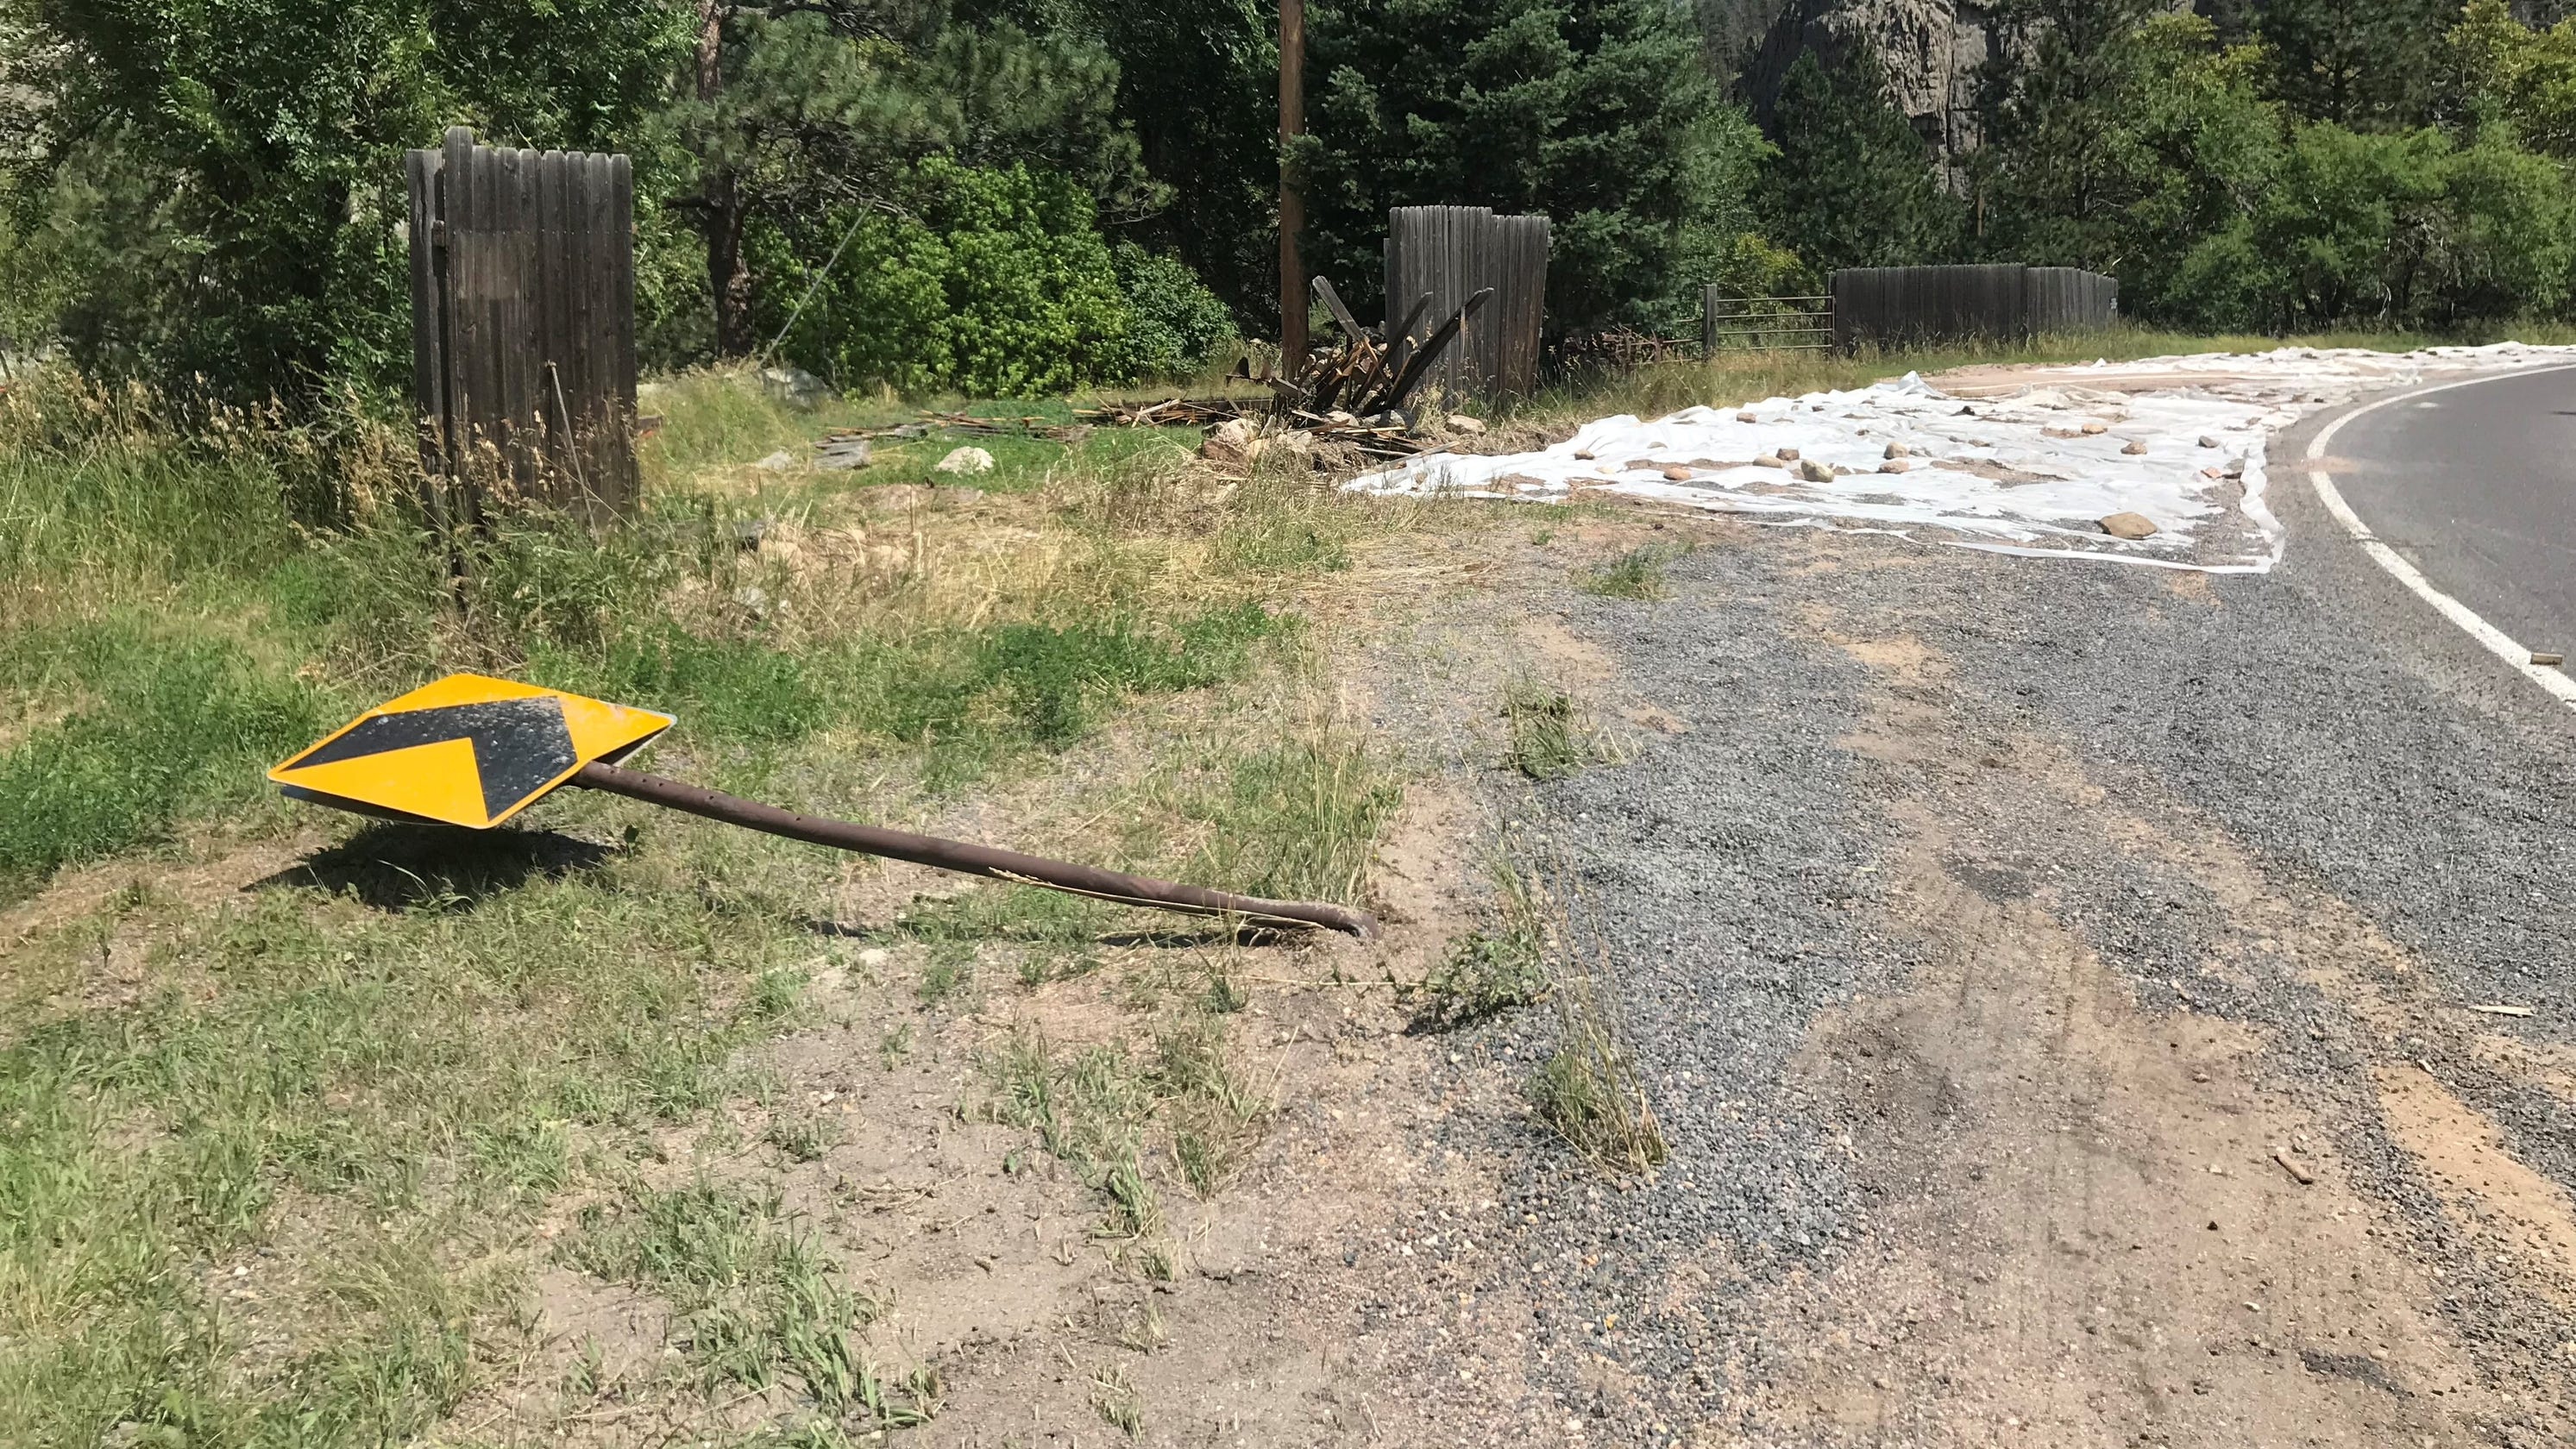 Report: Fracking truck spilled flowback fluid in Poudre Canyon